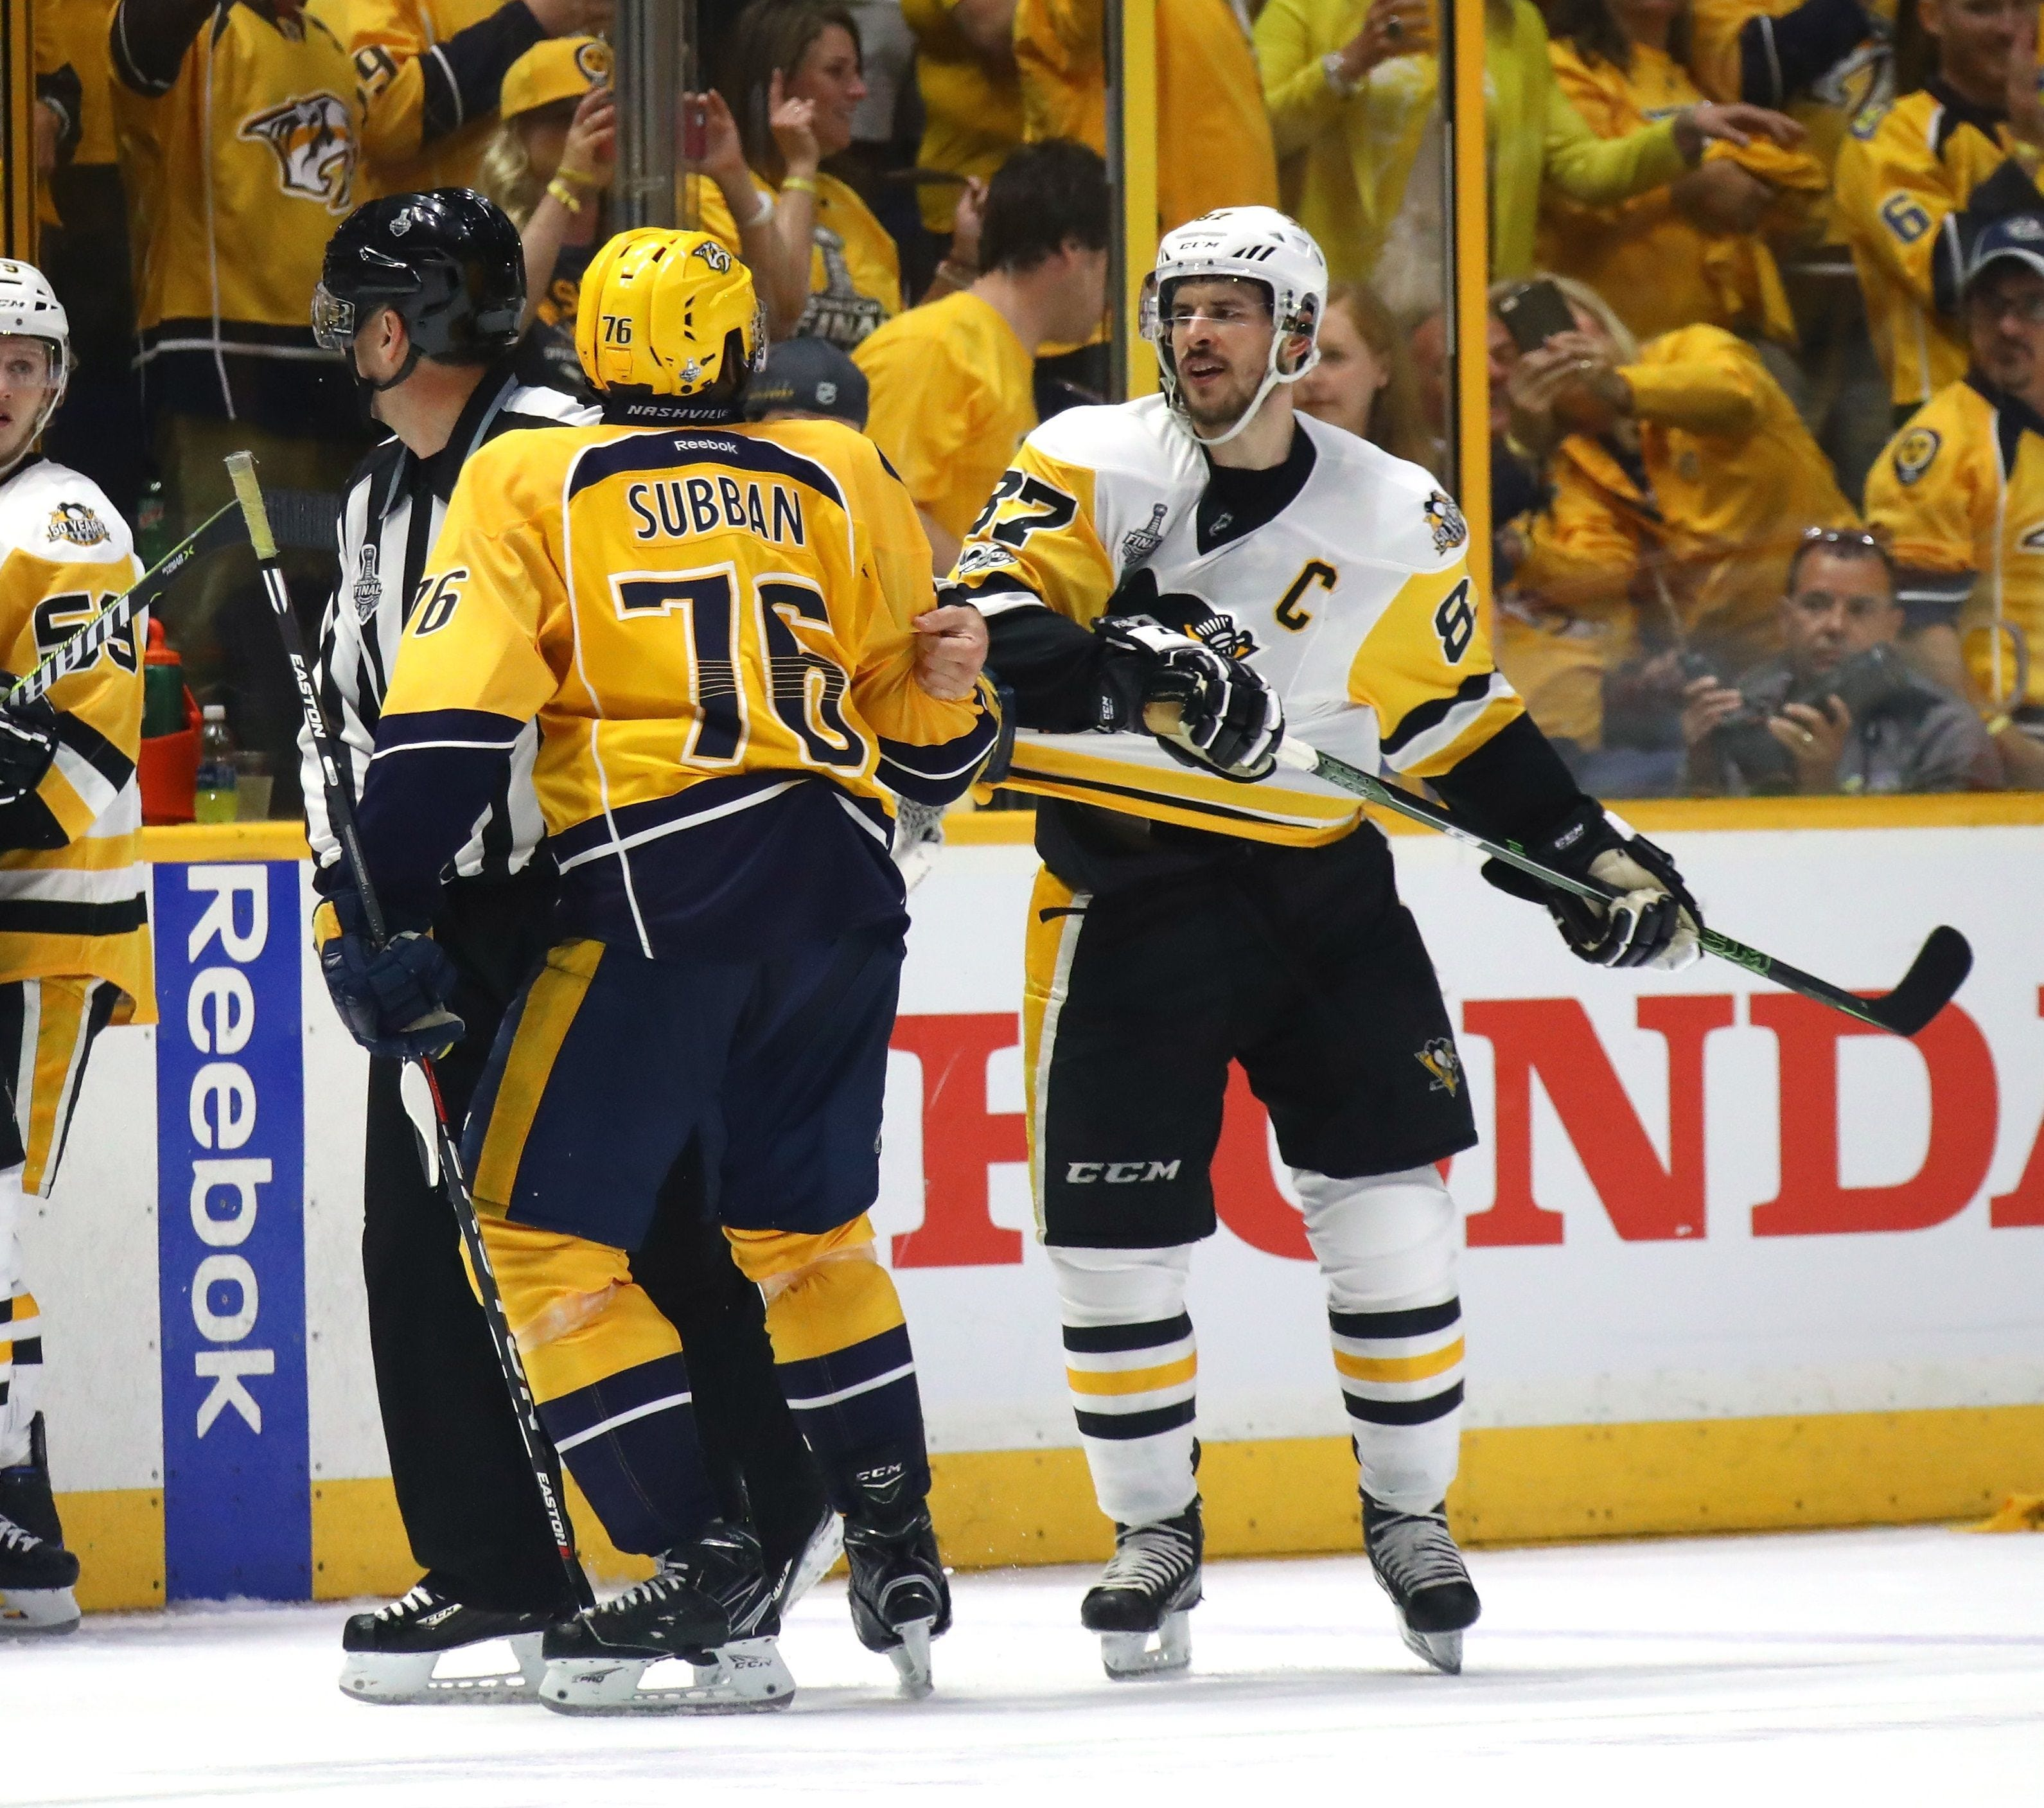 Don't waste your breath: Penguins know pivotal Game 4 is about execution